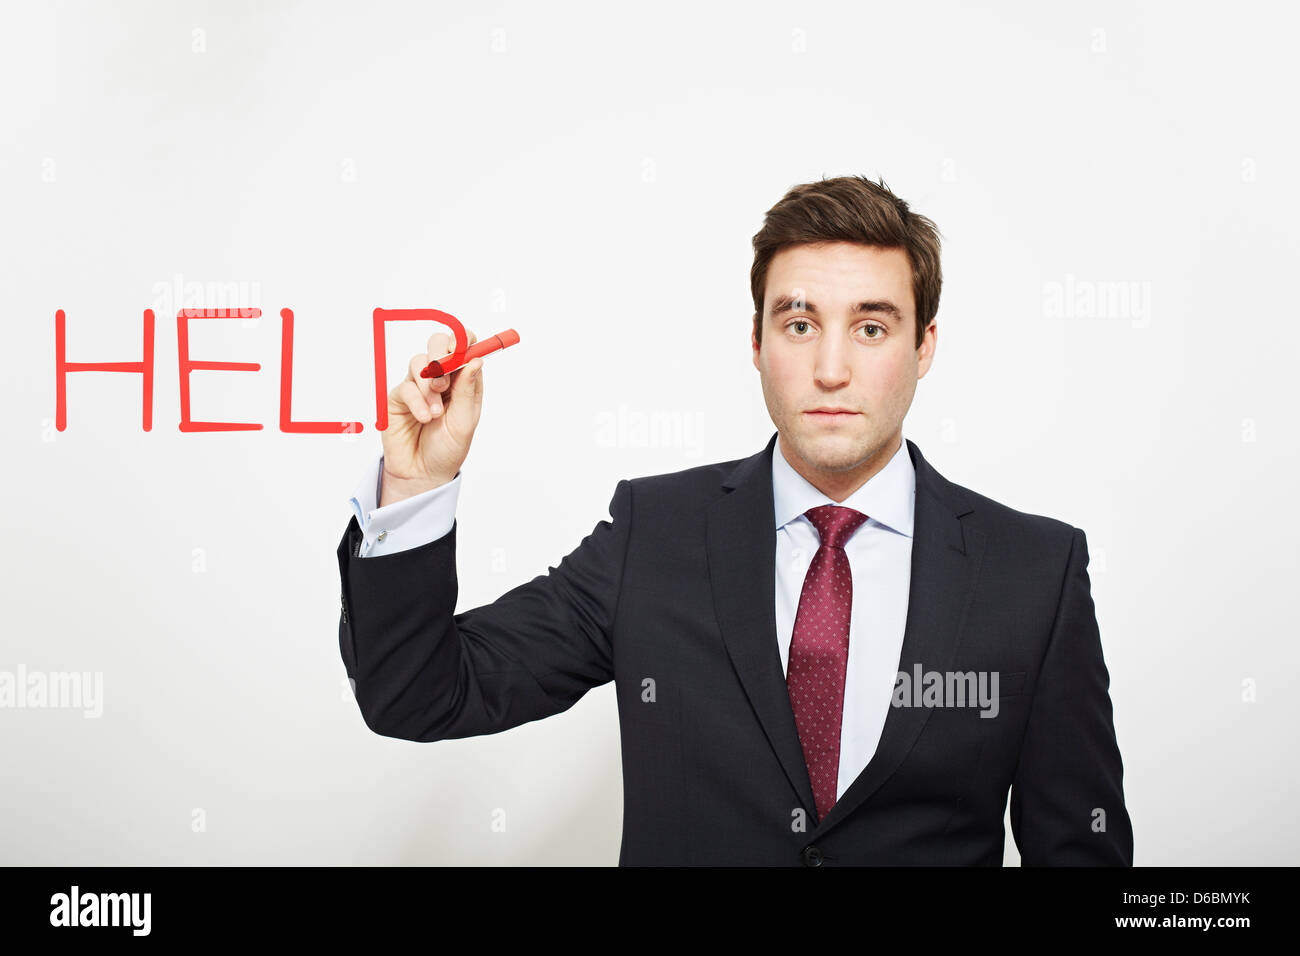 Businessman writing ?help in air - Stock Image